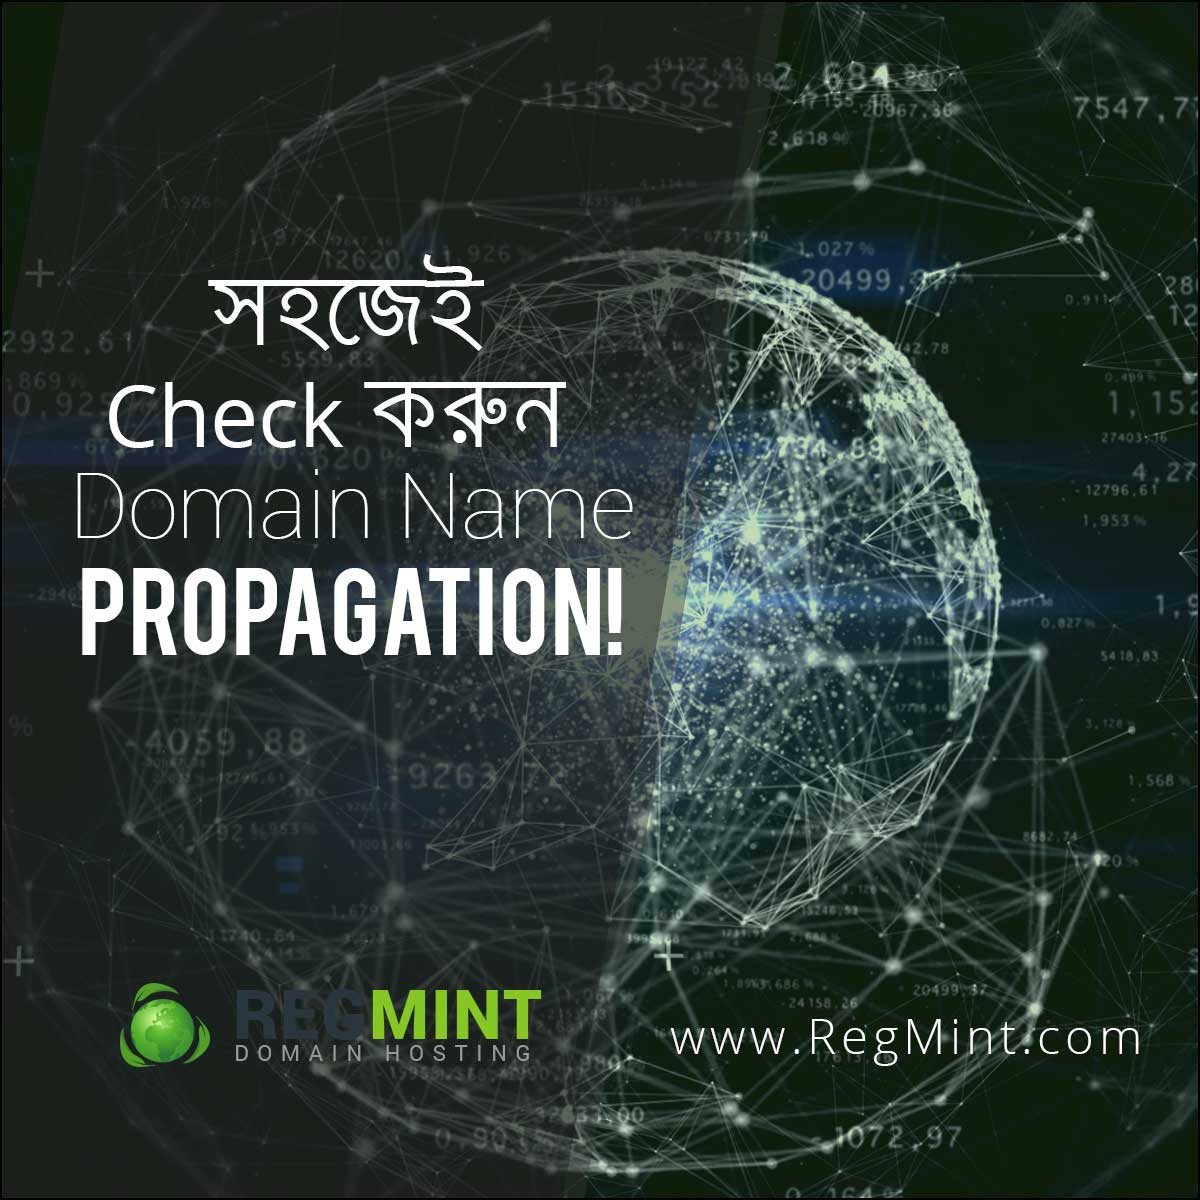 সহজেই Check করুন Domain Name Propagation!